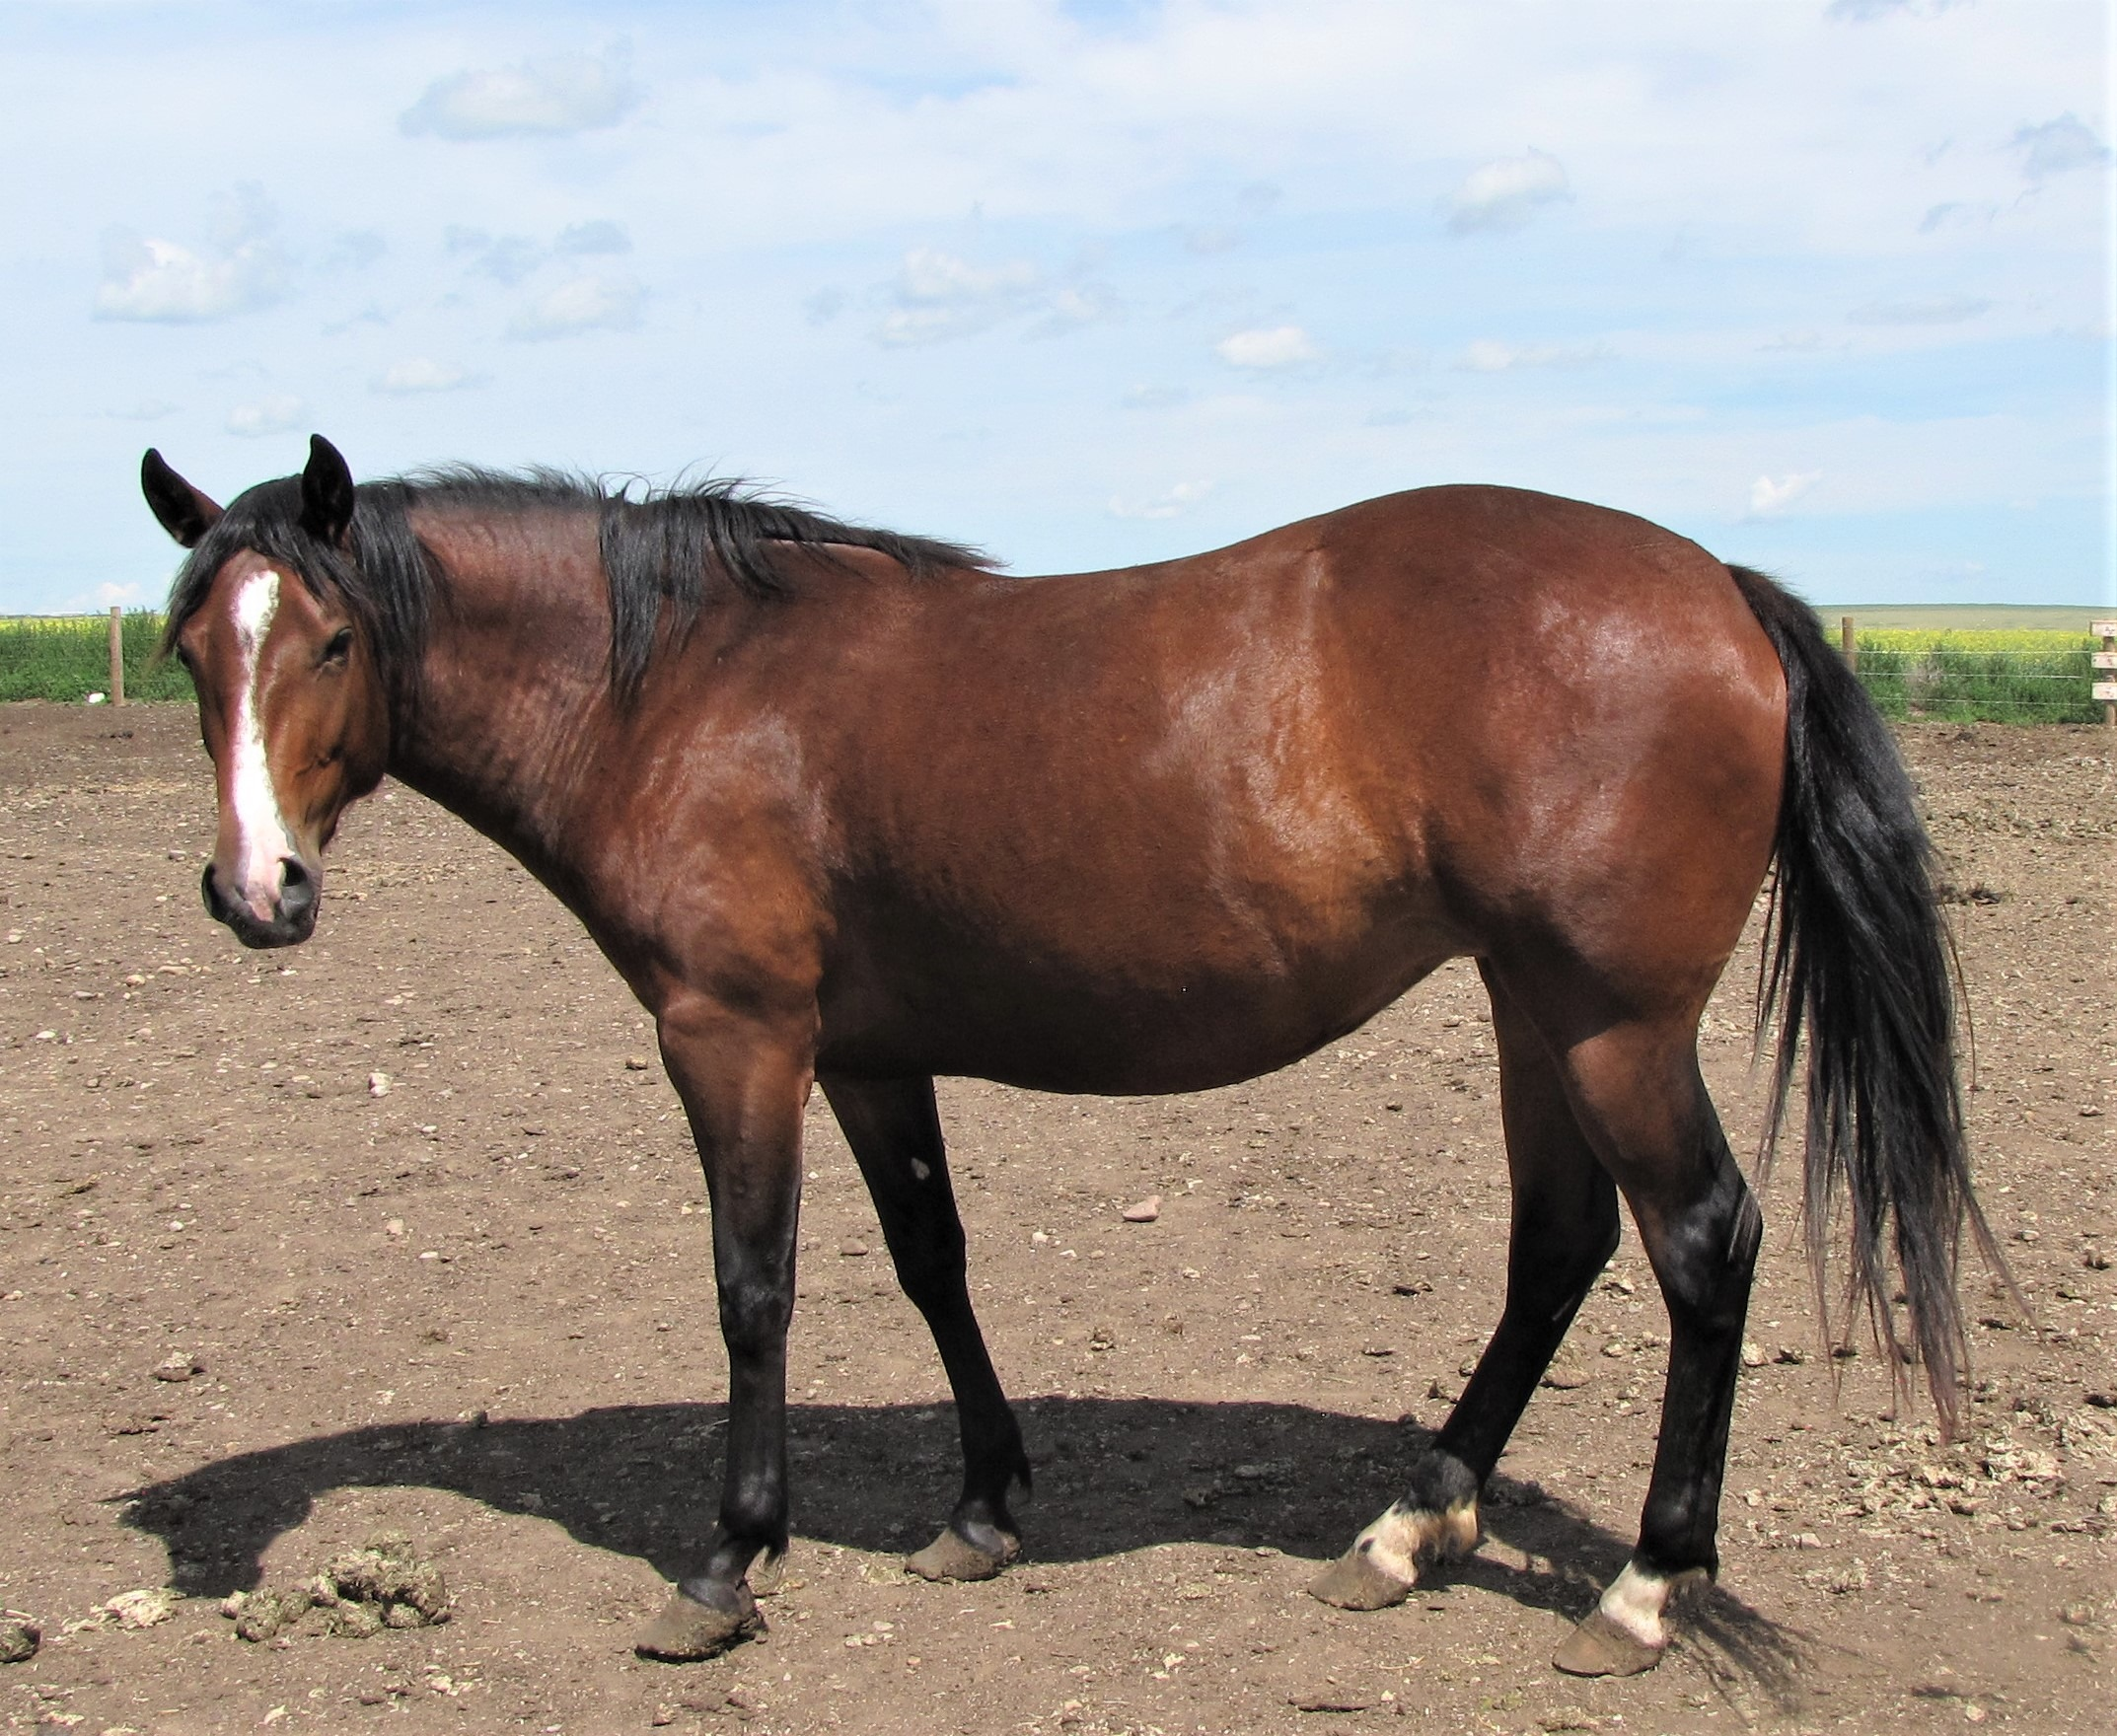 CLEO - 2016 Appaloosa Mare. She loves people and is very quiet.